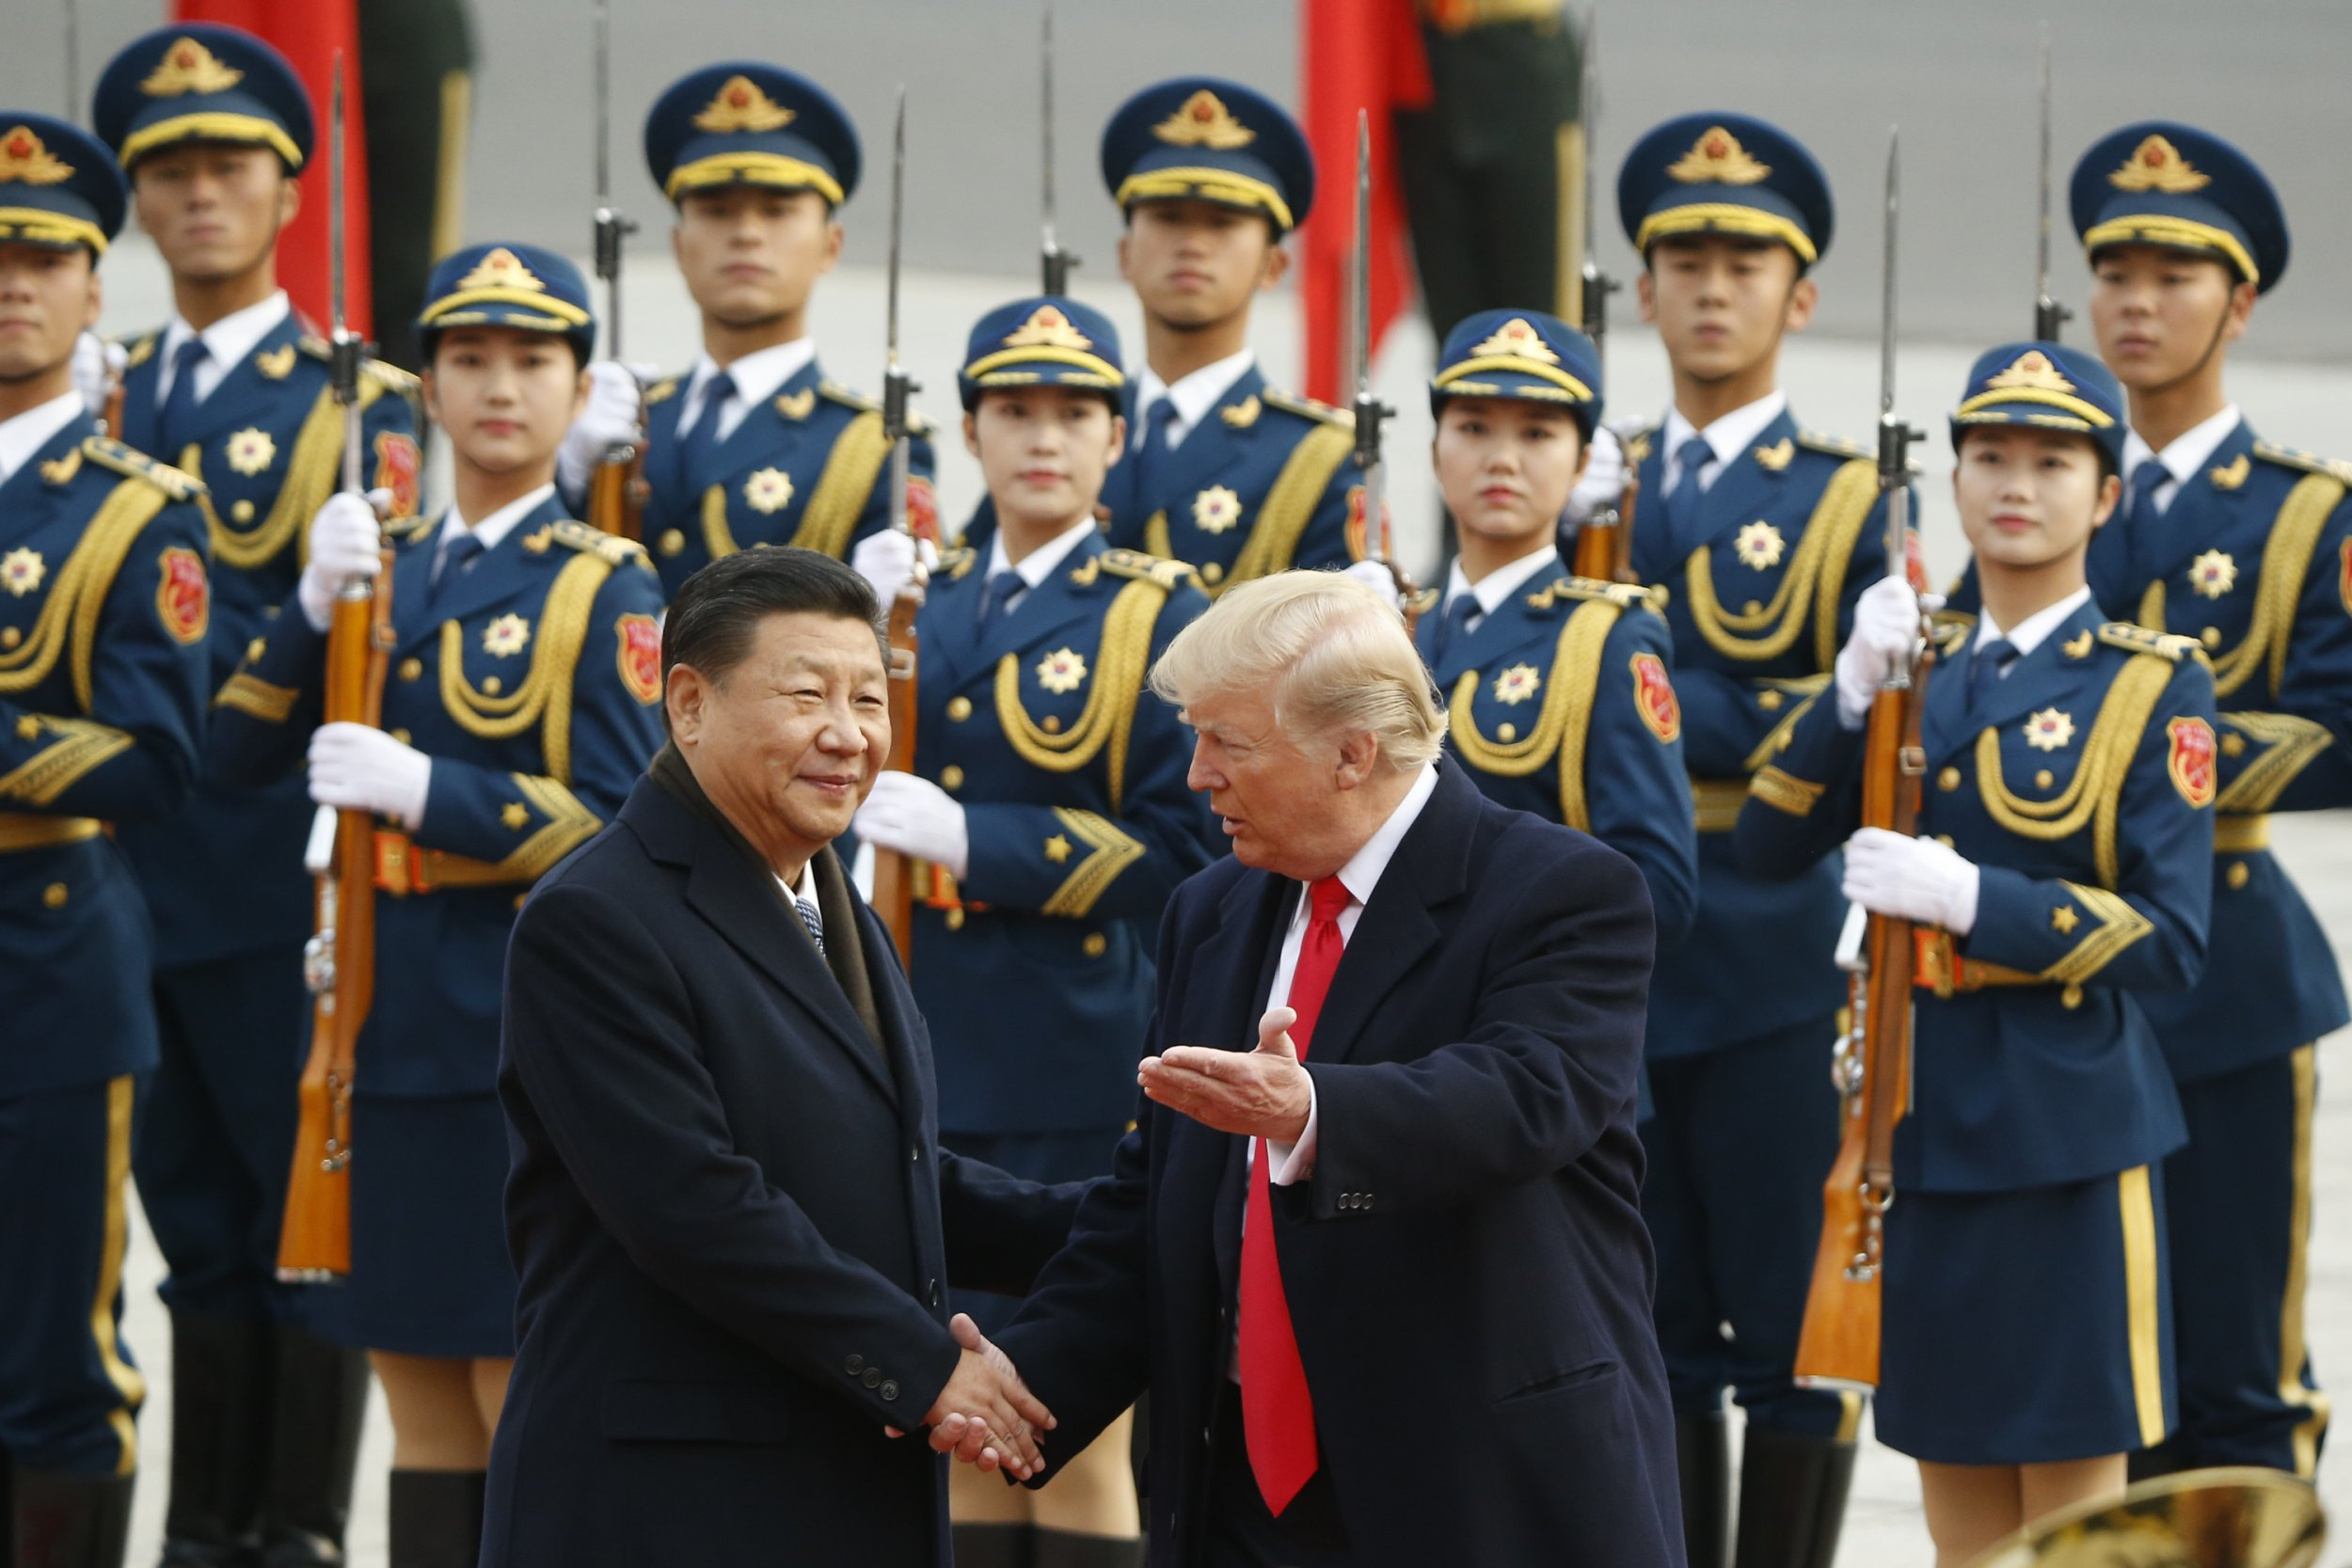 Donald Trump Xi Jinping China trade war